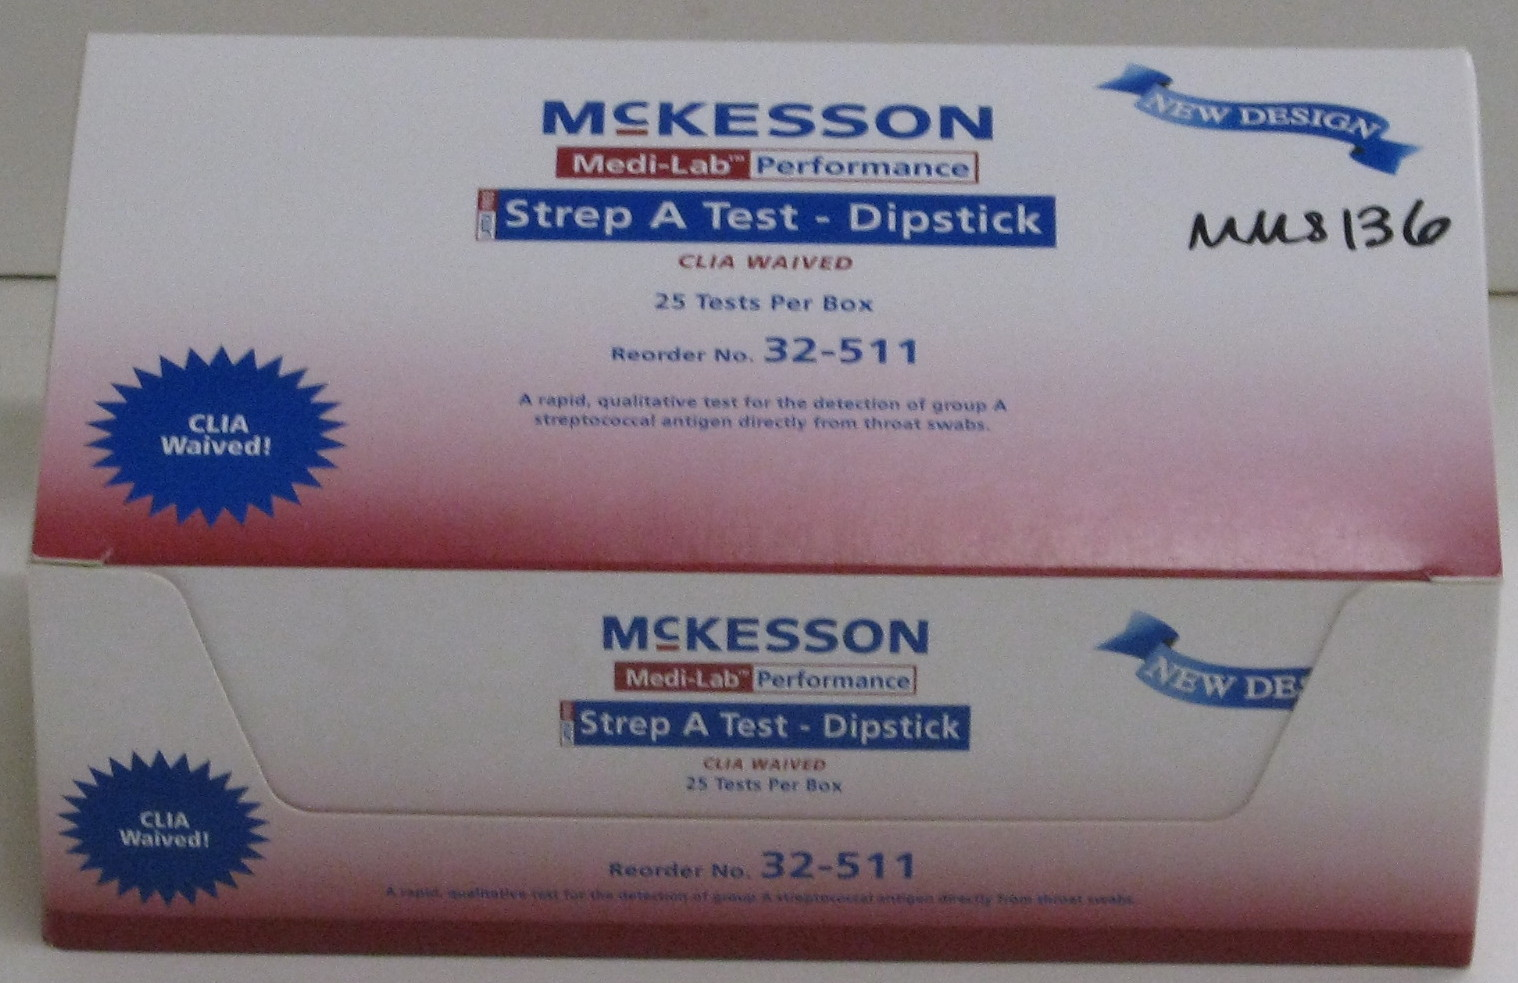 Strep A Test Kit - Dipstick